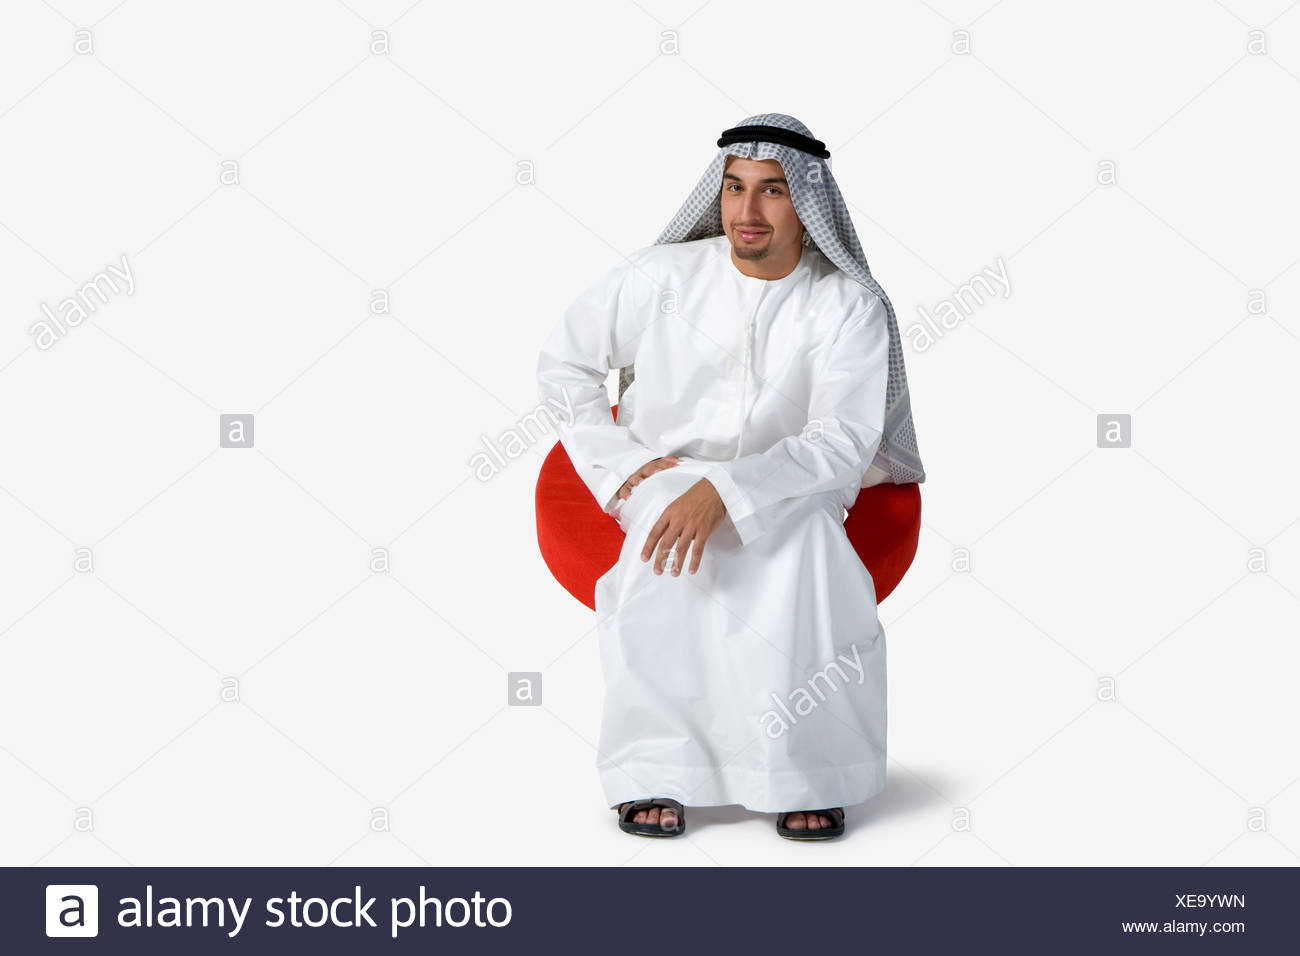 Young man sitting on chair, smiling, portrait Stock Photo